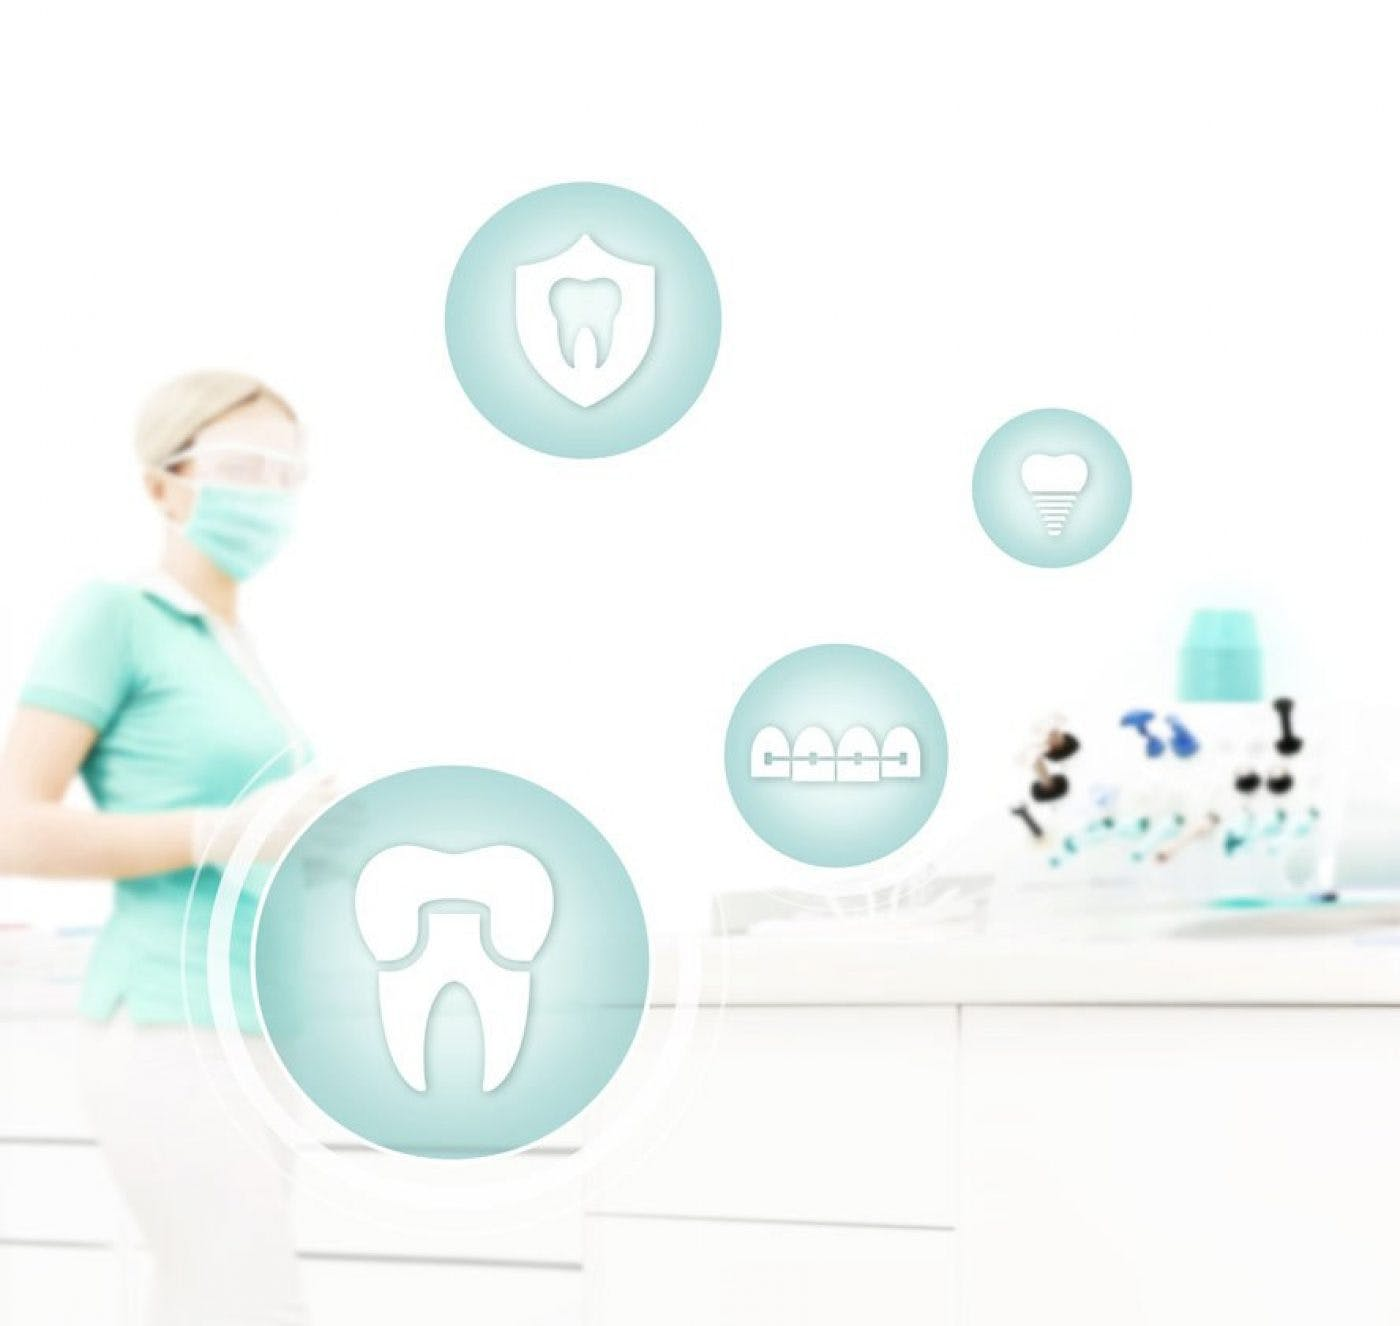 Bothwell Advicecare Commondentalconditions